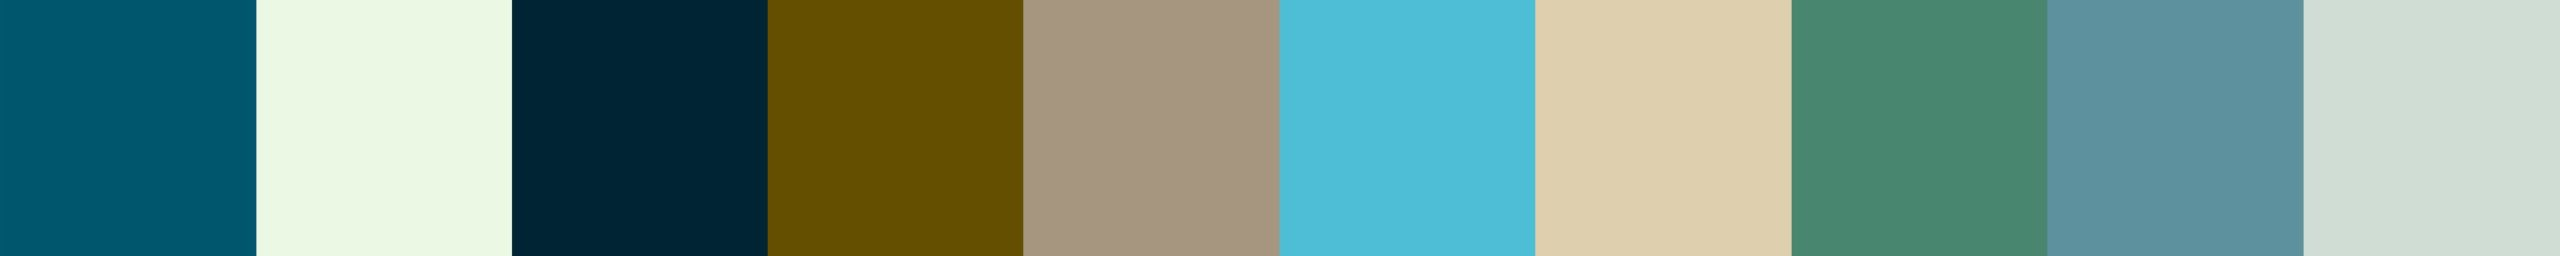 564 Anteia Color Palette